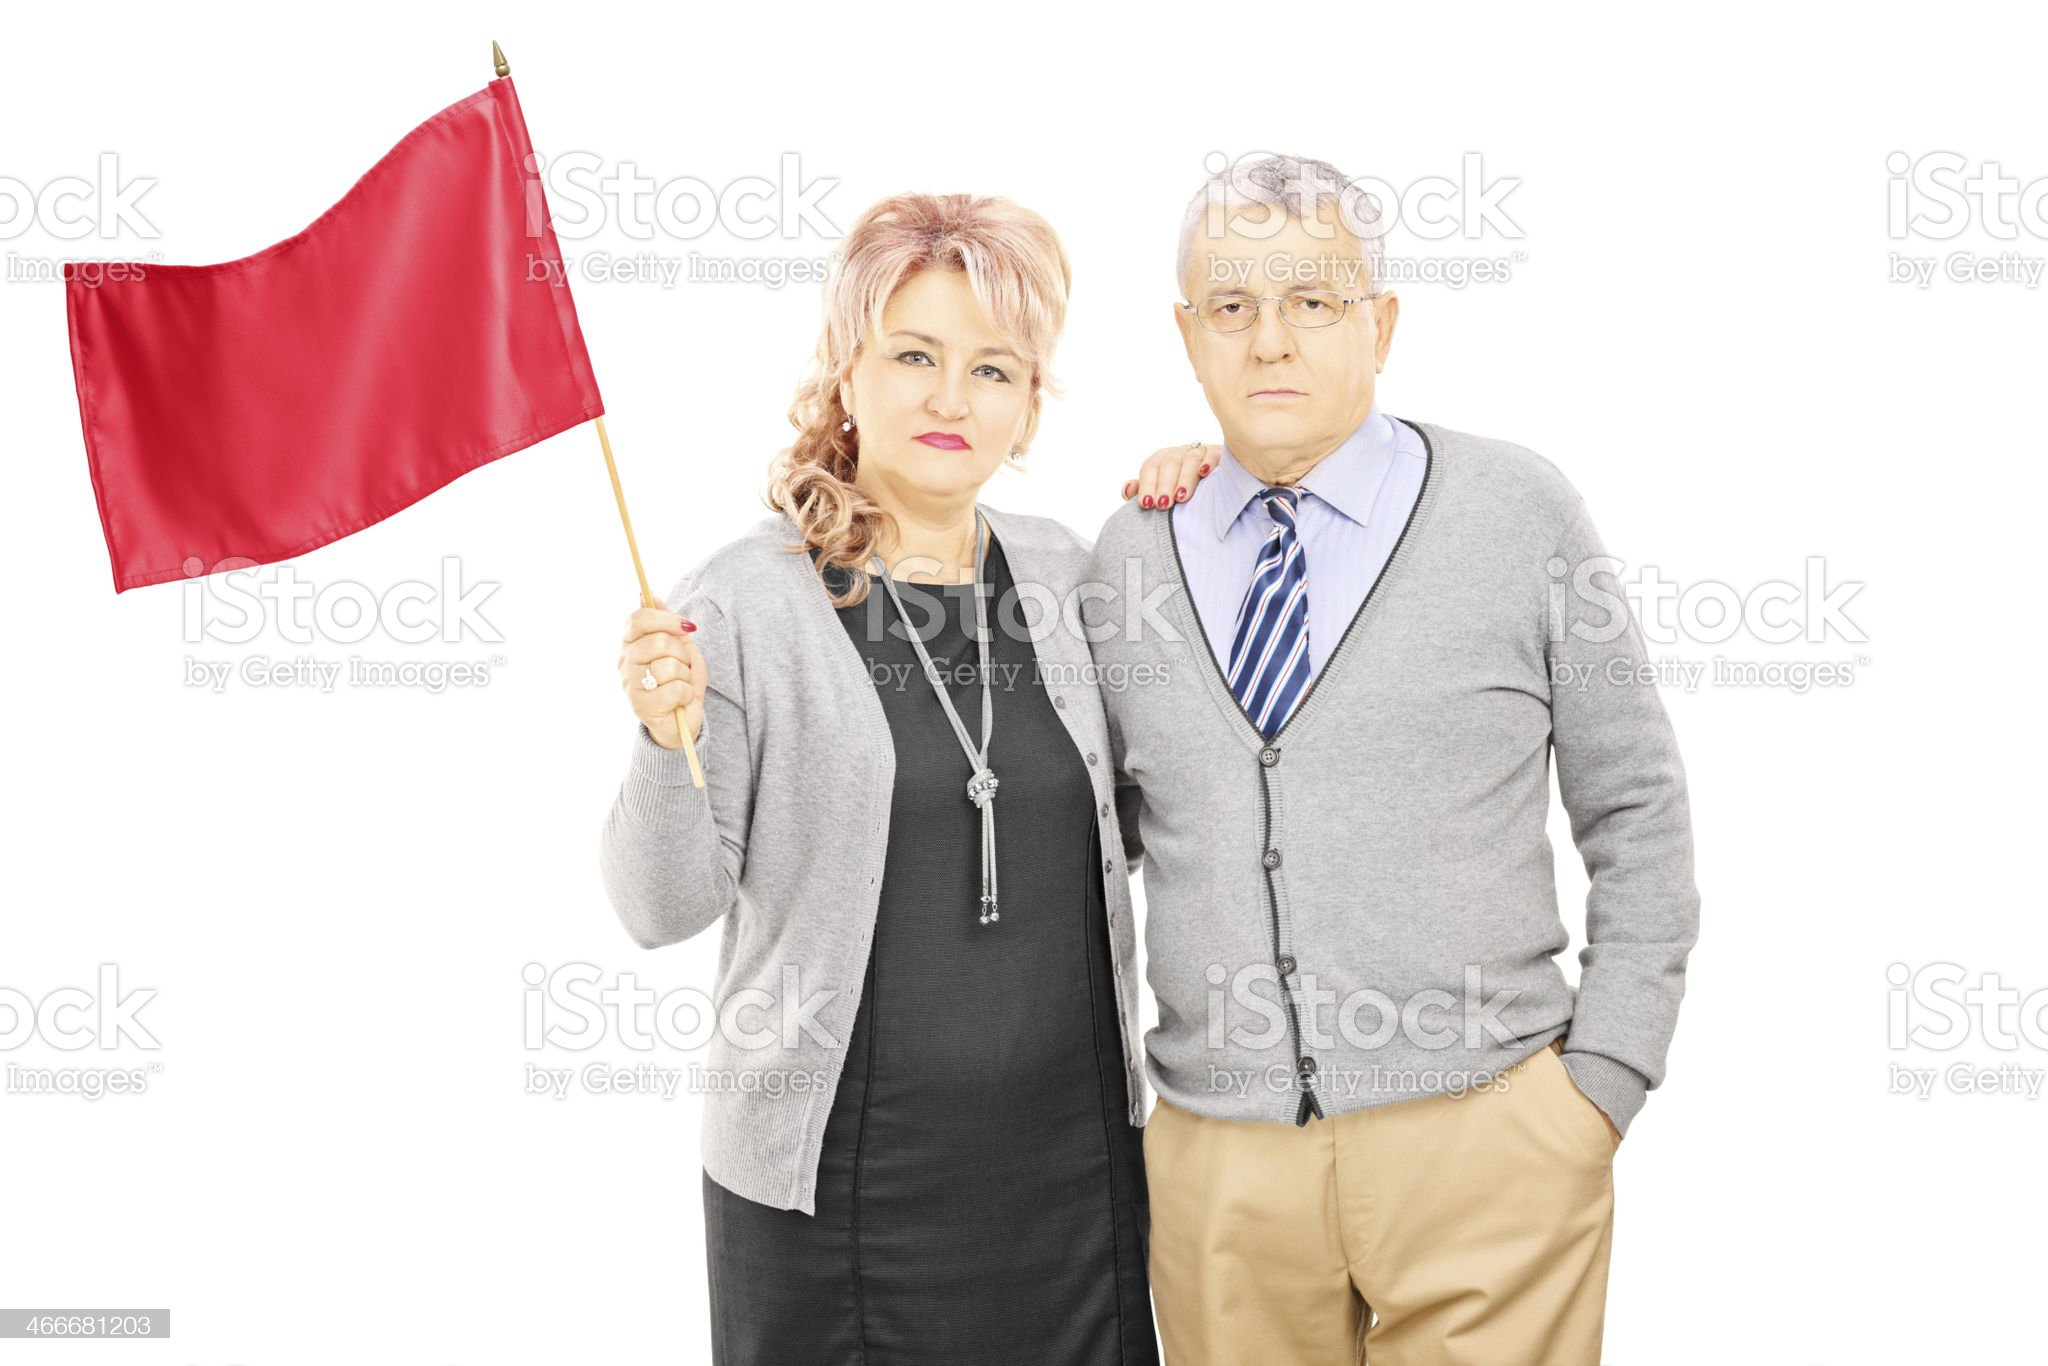 Middle aged couple waving a red flag royalty-free stock photo